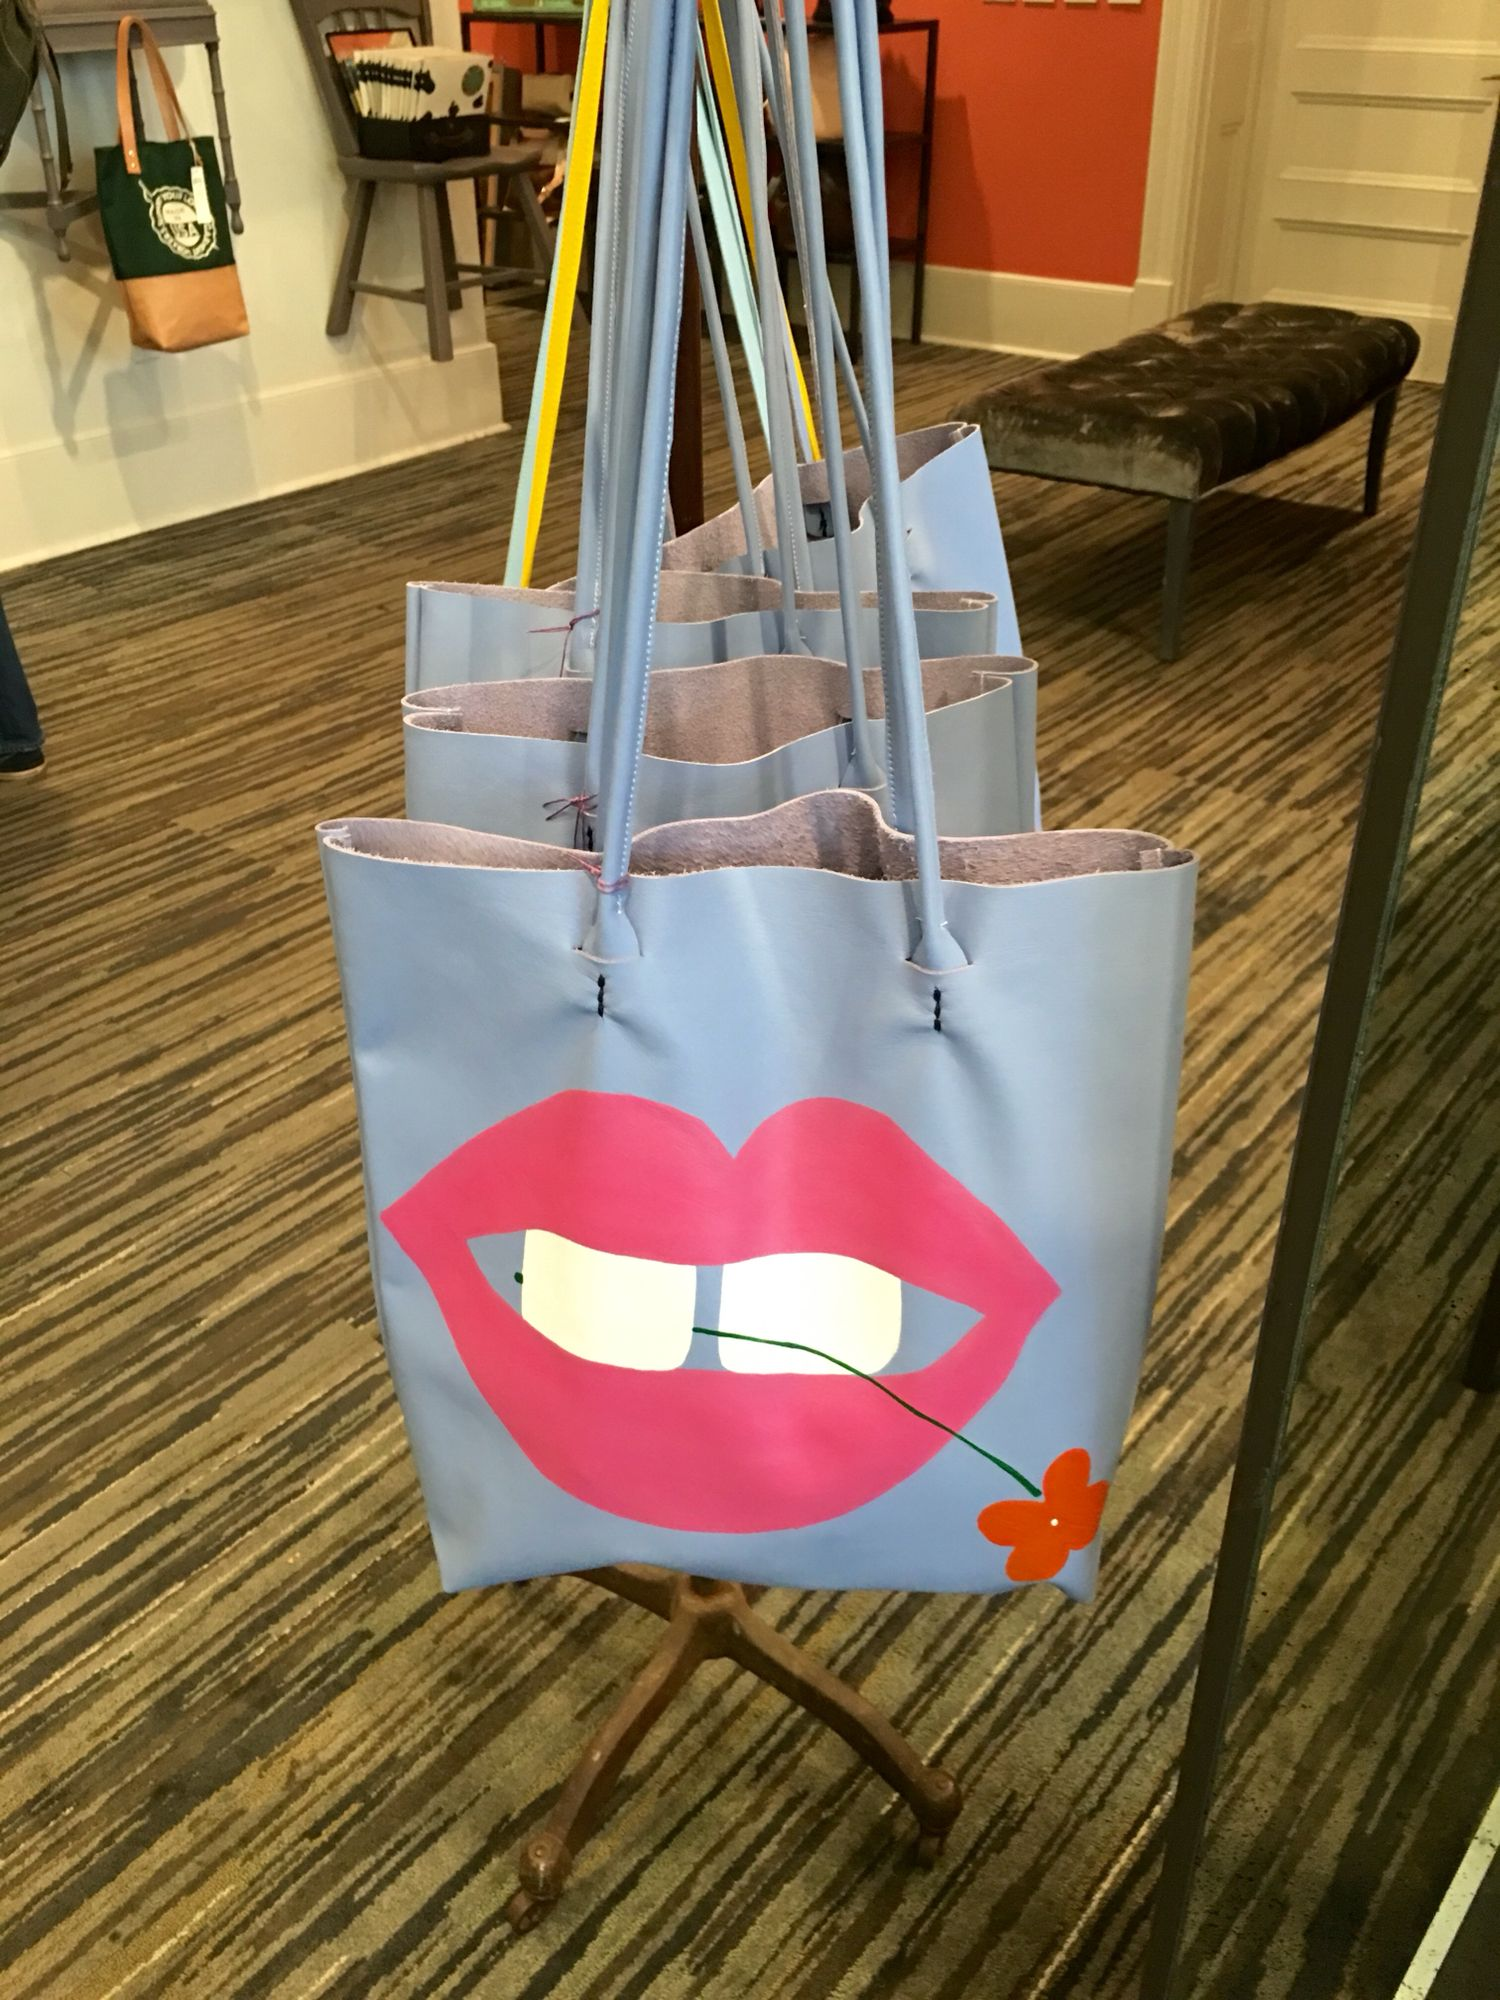 Scad Store Savannah Ga With Images Paper Shopping Bag